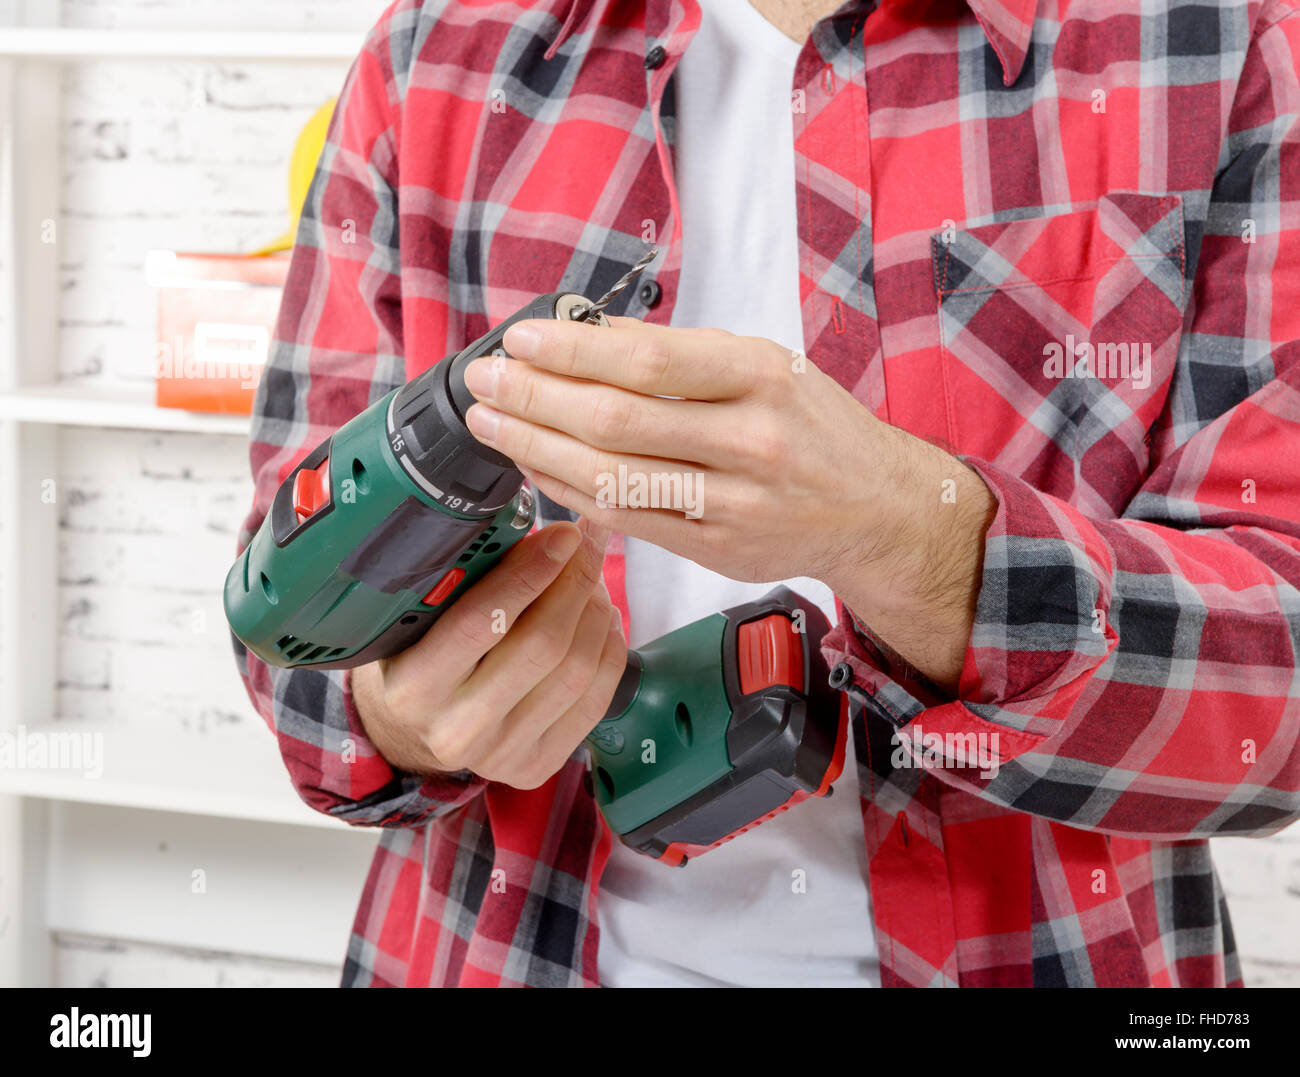 a man using drill. Close-up view of man using drill - Stock Image